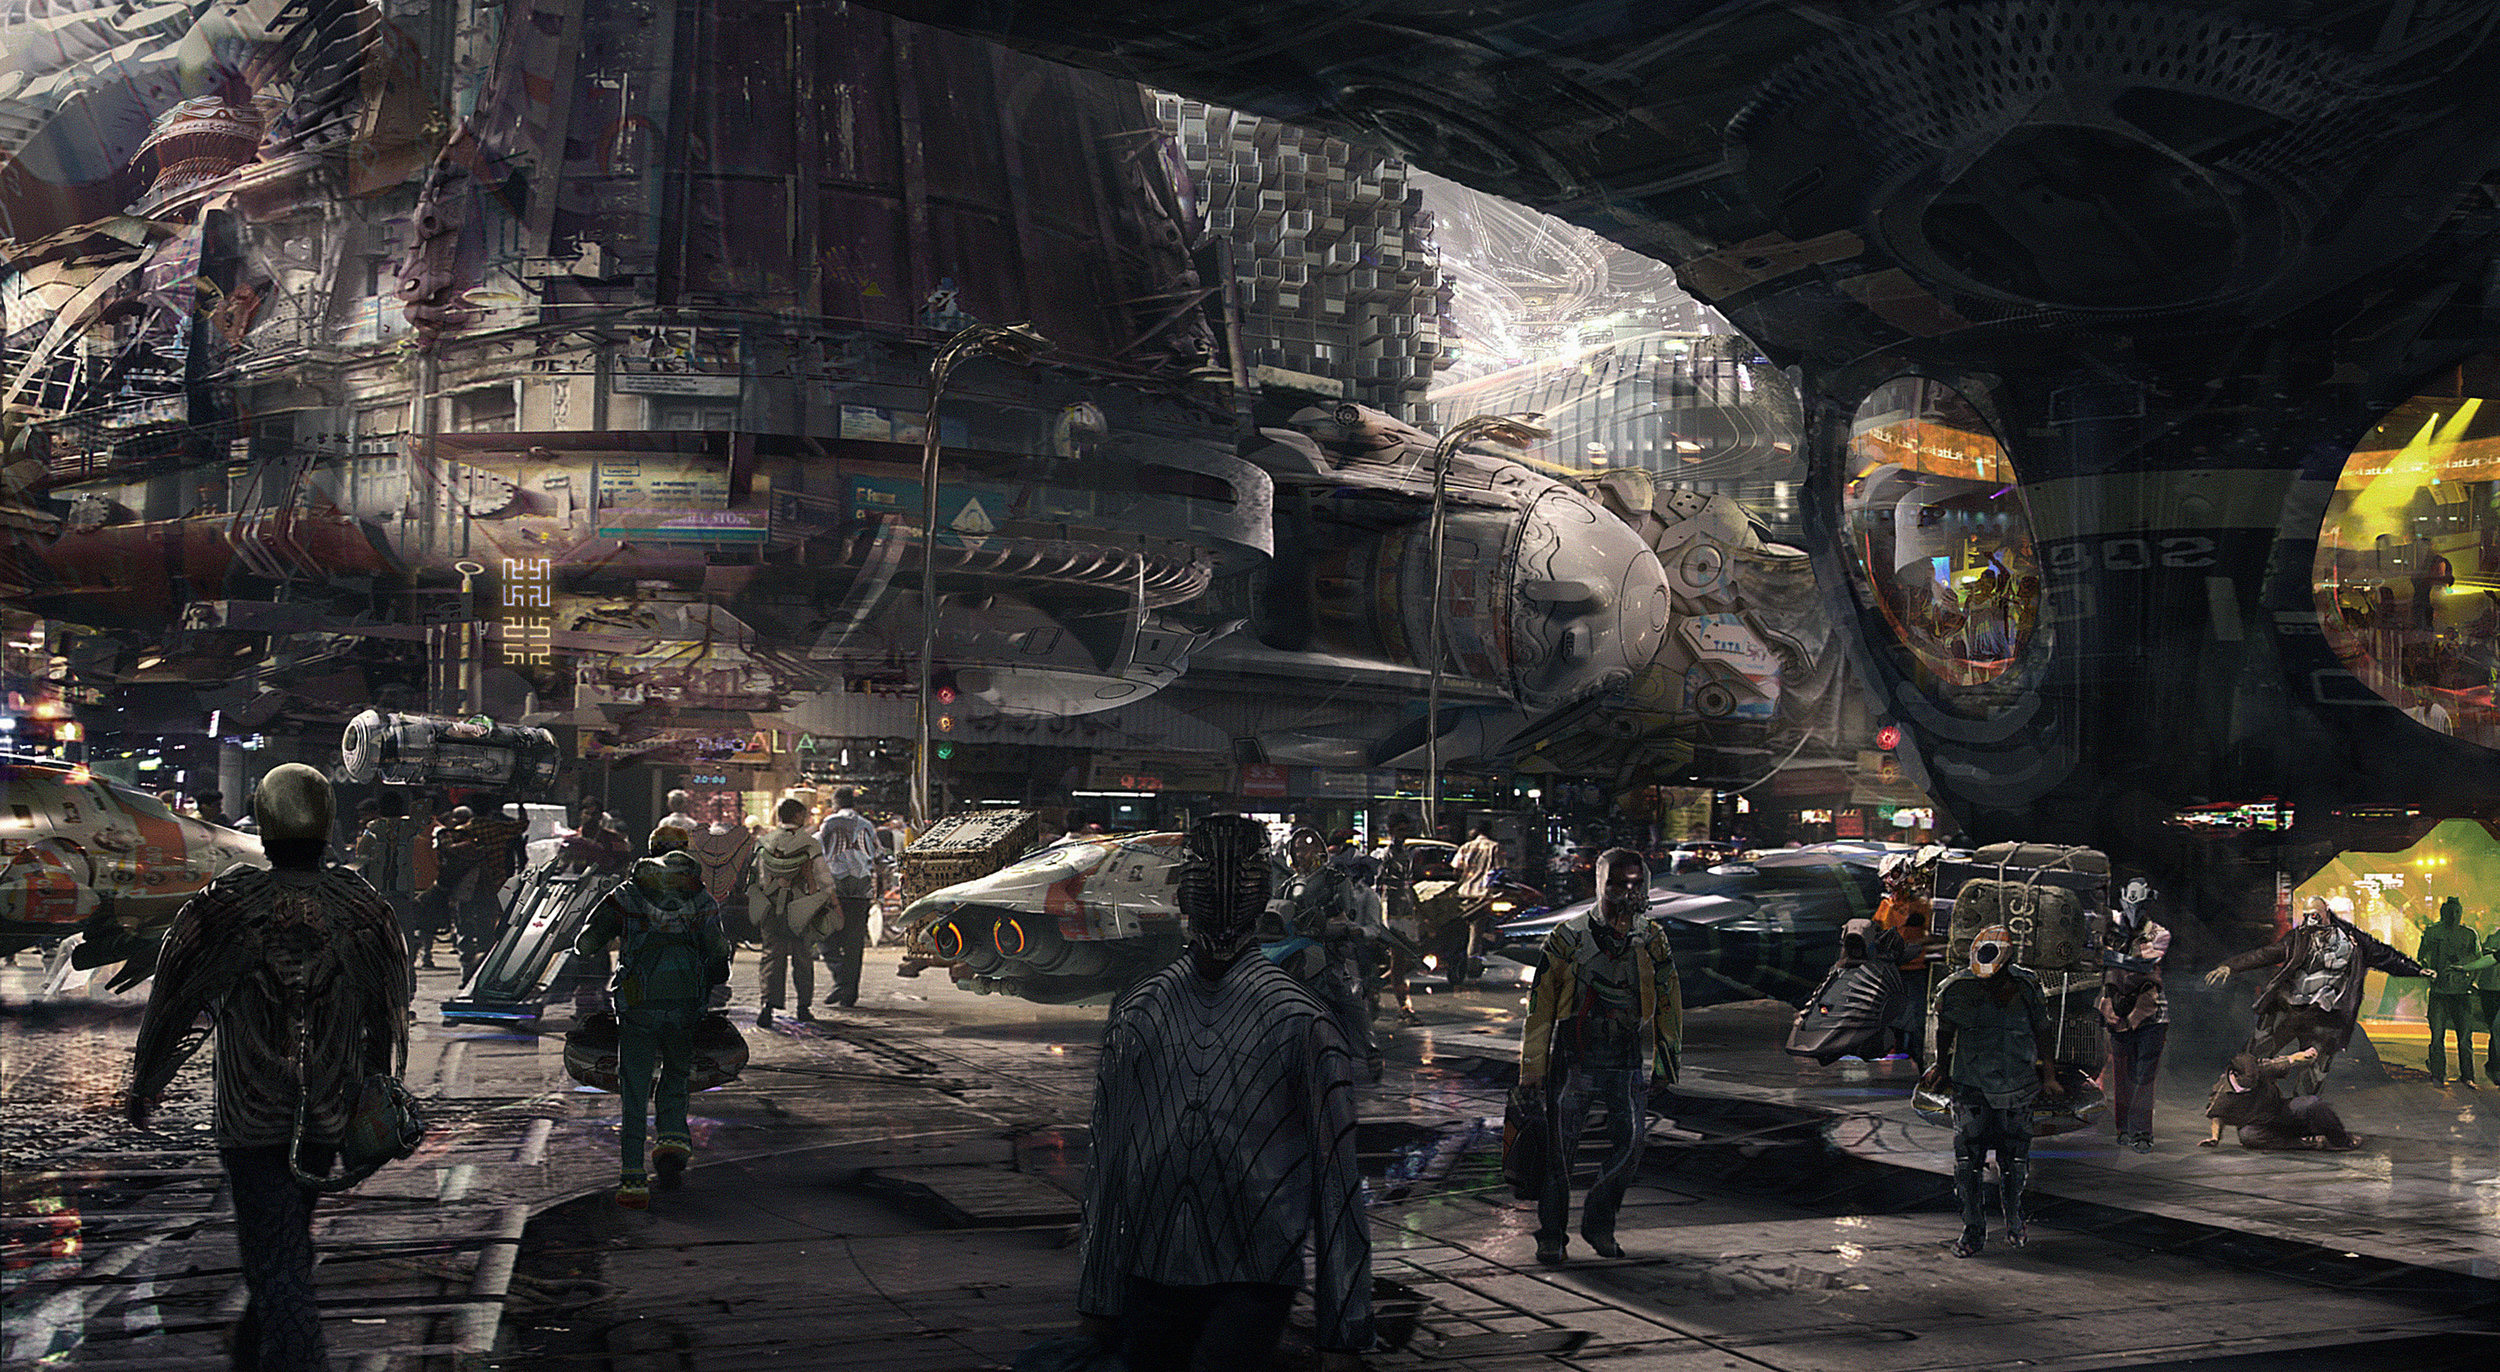 The Sci-Fi Concept Art of Olivier Pron